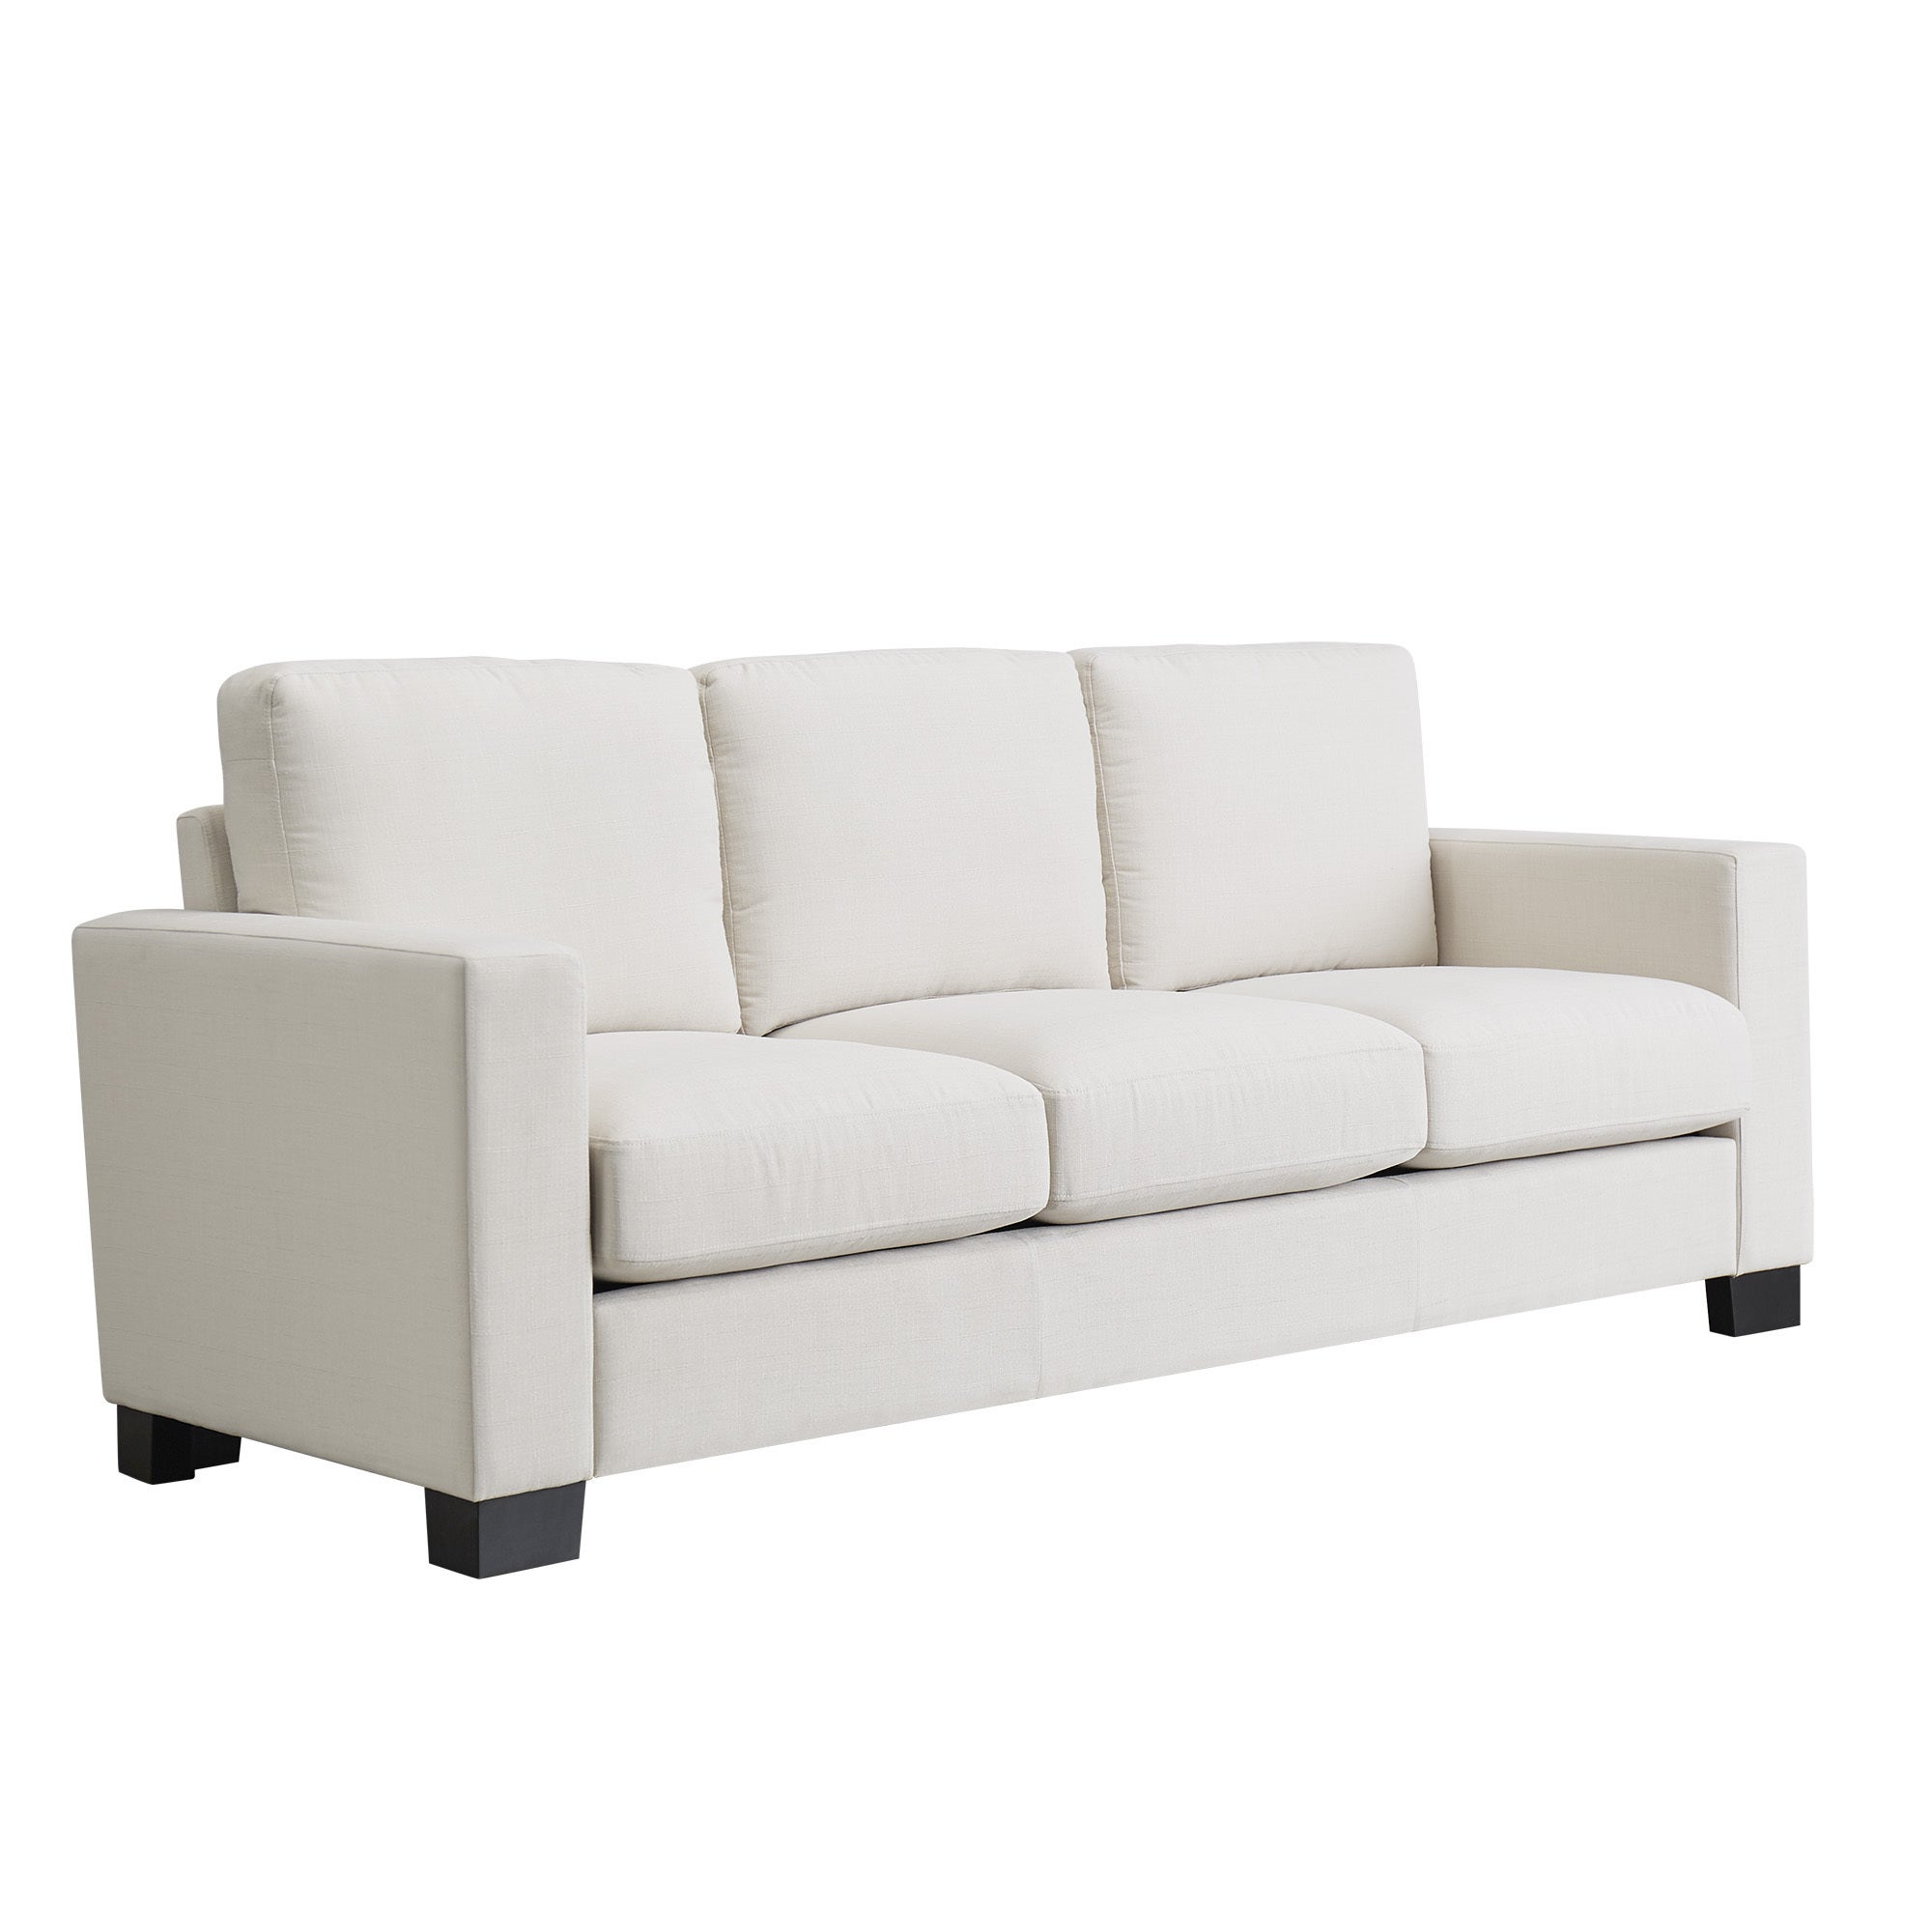 Torrington White Linen Fabric Down Filled Track Arm Sofa by iNSPIRE Q  Artisan - Free Shipping Today - Overstock.com - 20437954